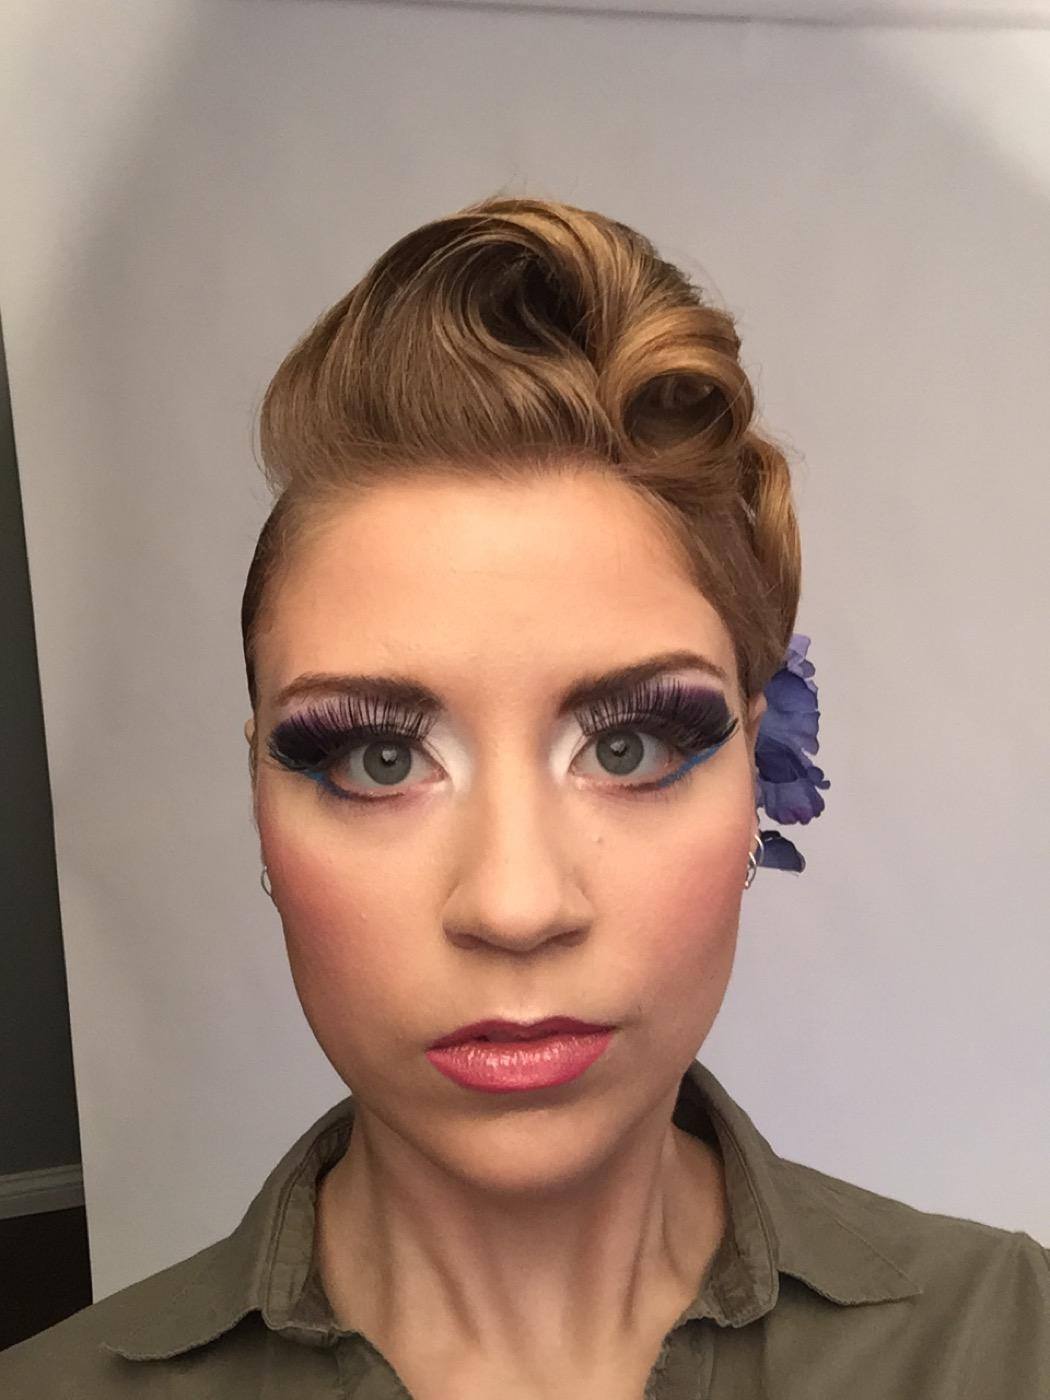 Girl with lots of makeup on